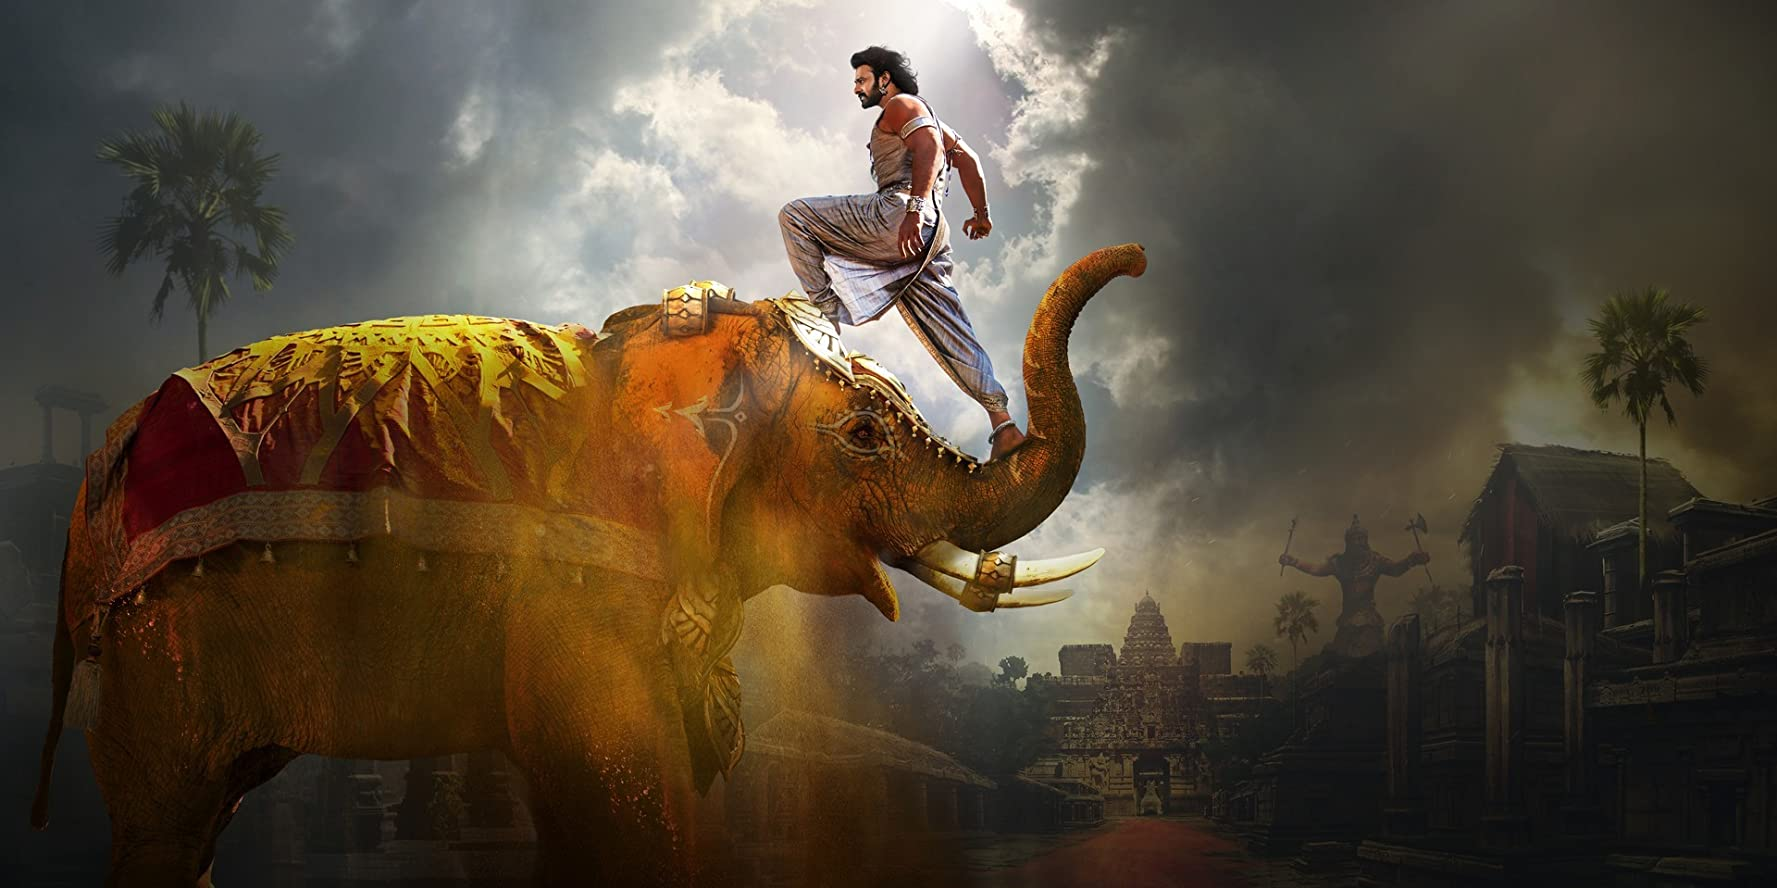 Baahubali 2: The Conclusion (2017) Full Movie Free Download And Watch Online In HD brrip bluray dvdrip 300mb 700mb 1gb